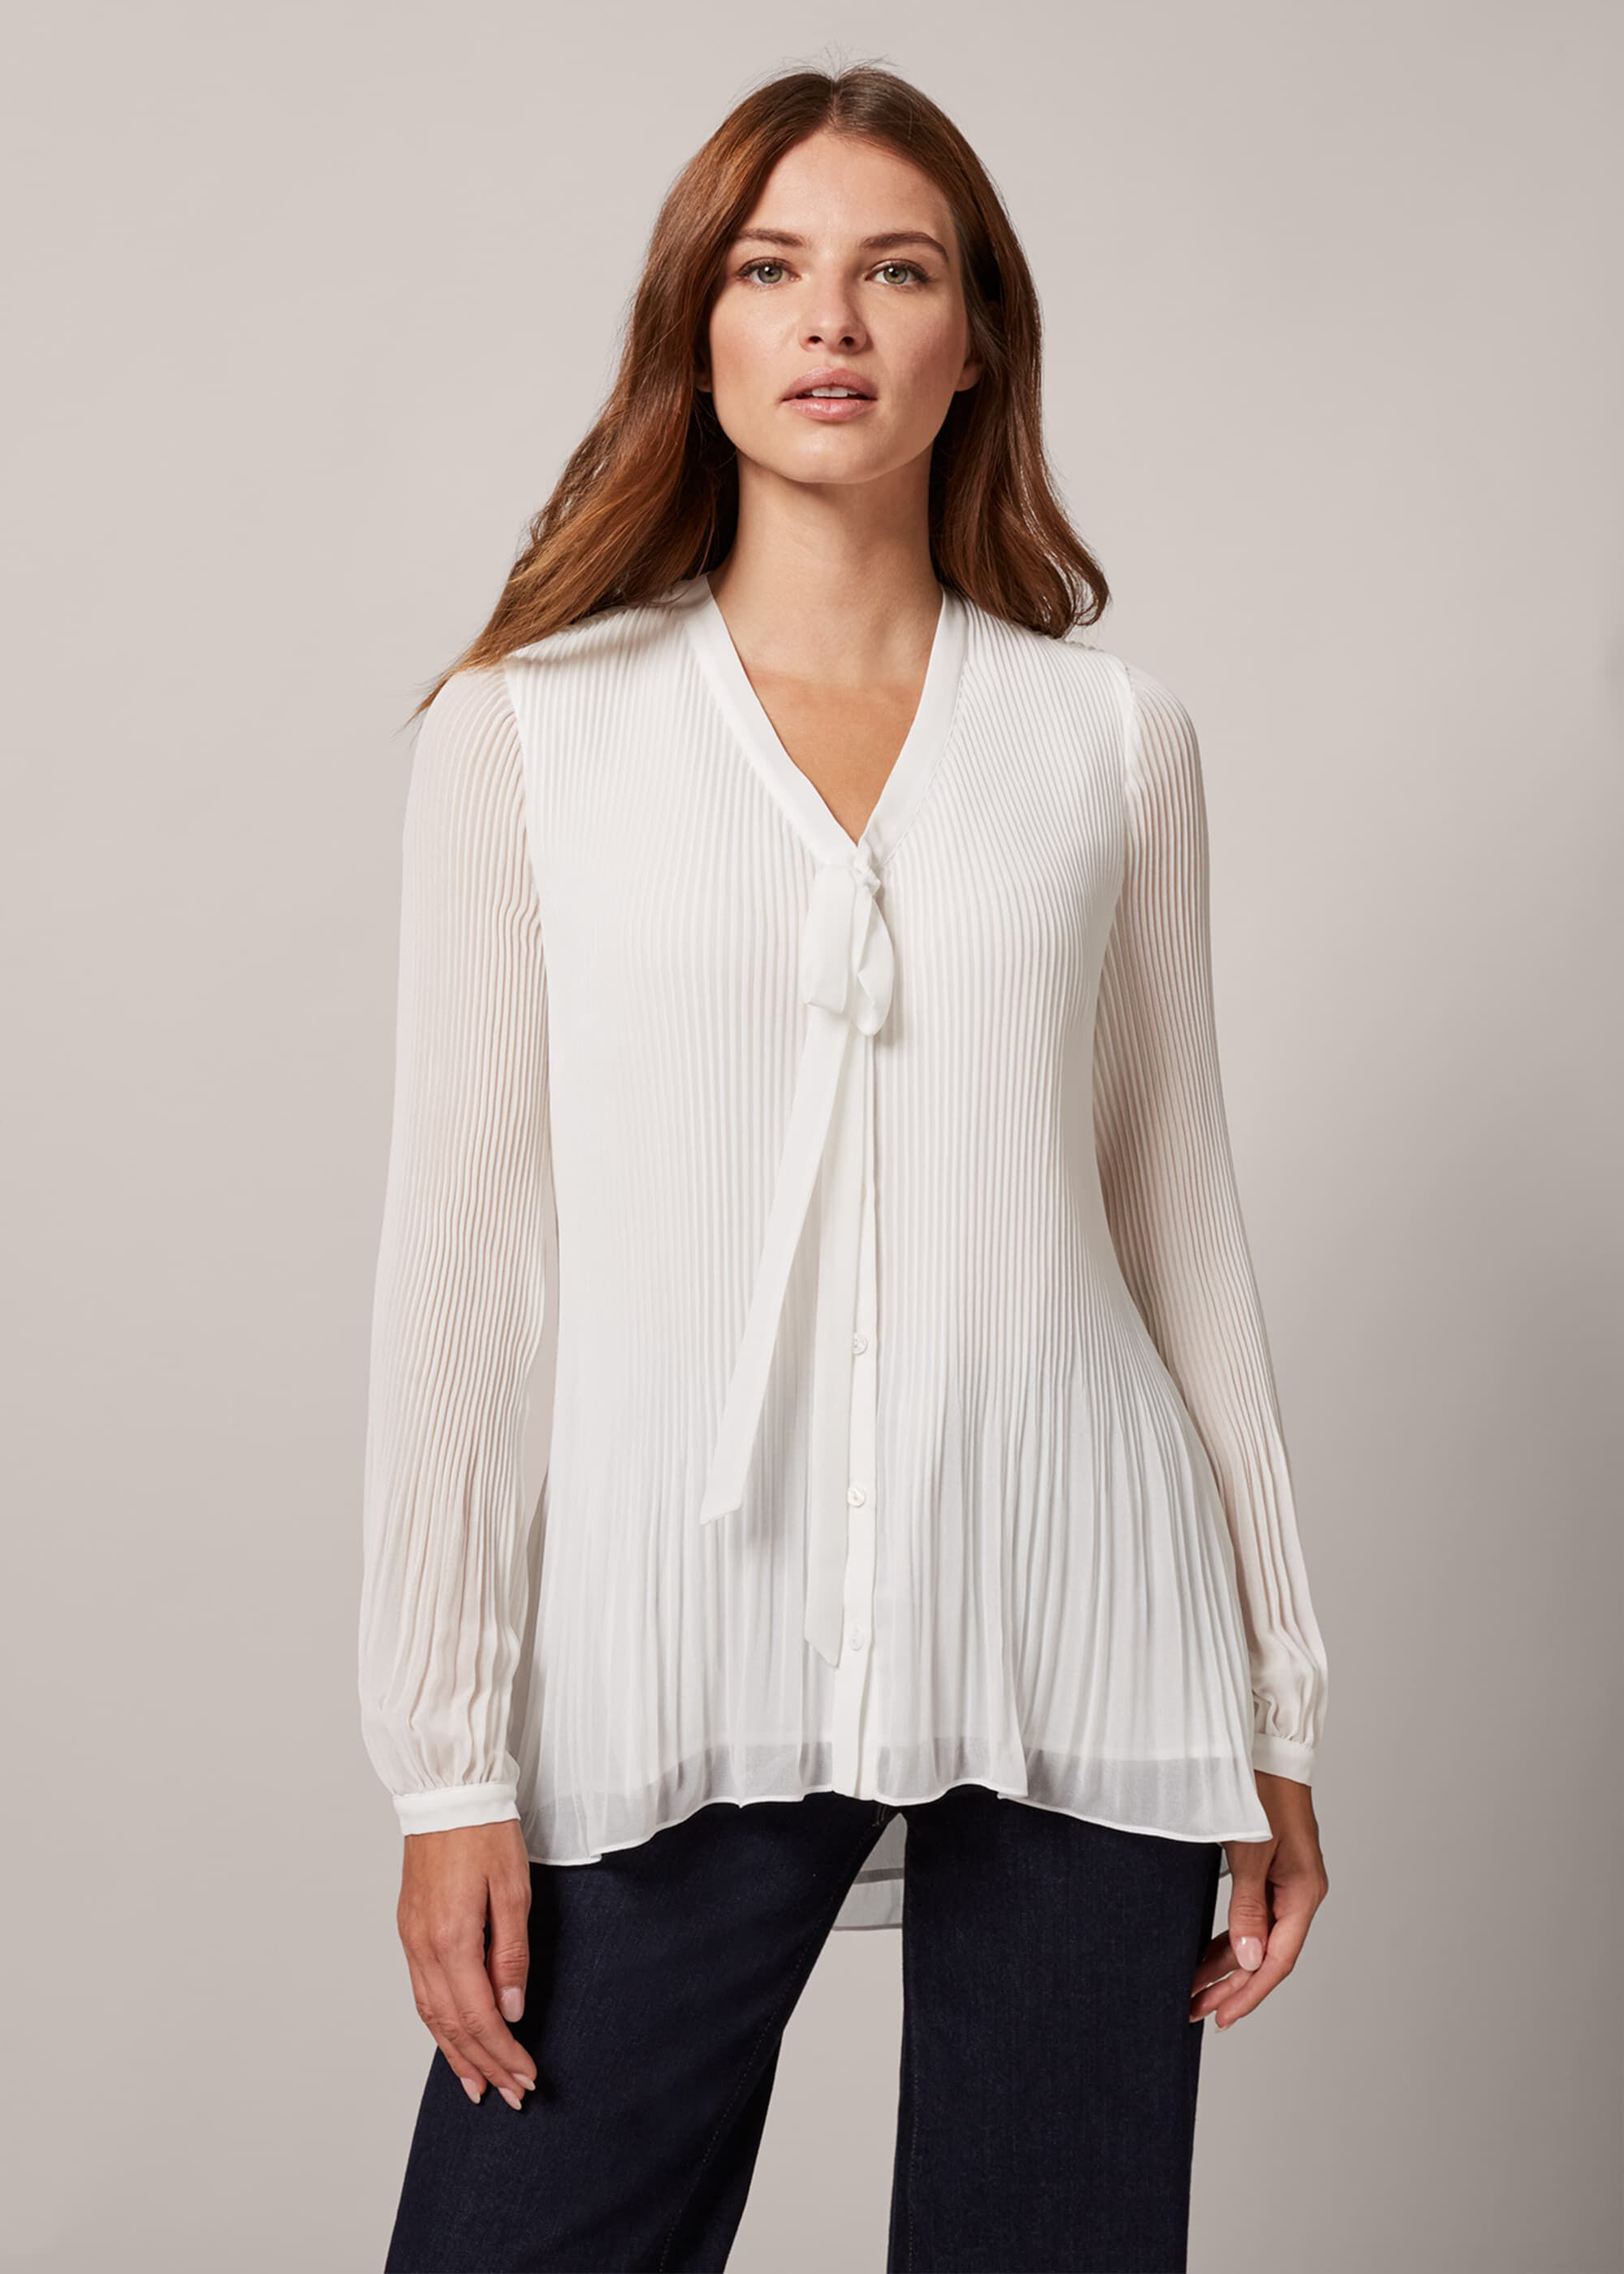 Phase Eight Lily-Beth Tie Pleat Blouse, Cream, Blouse